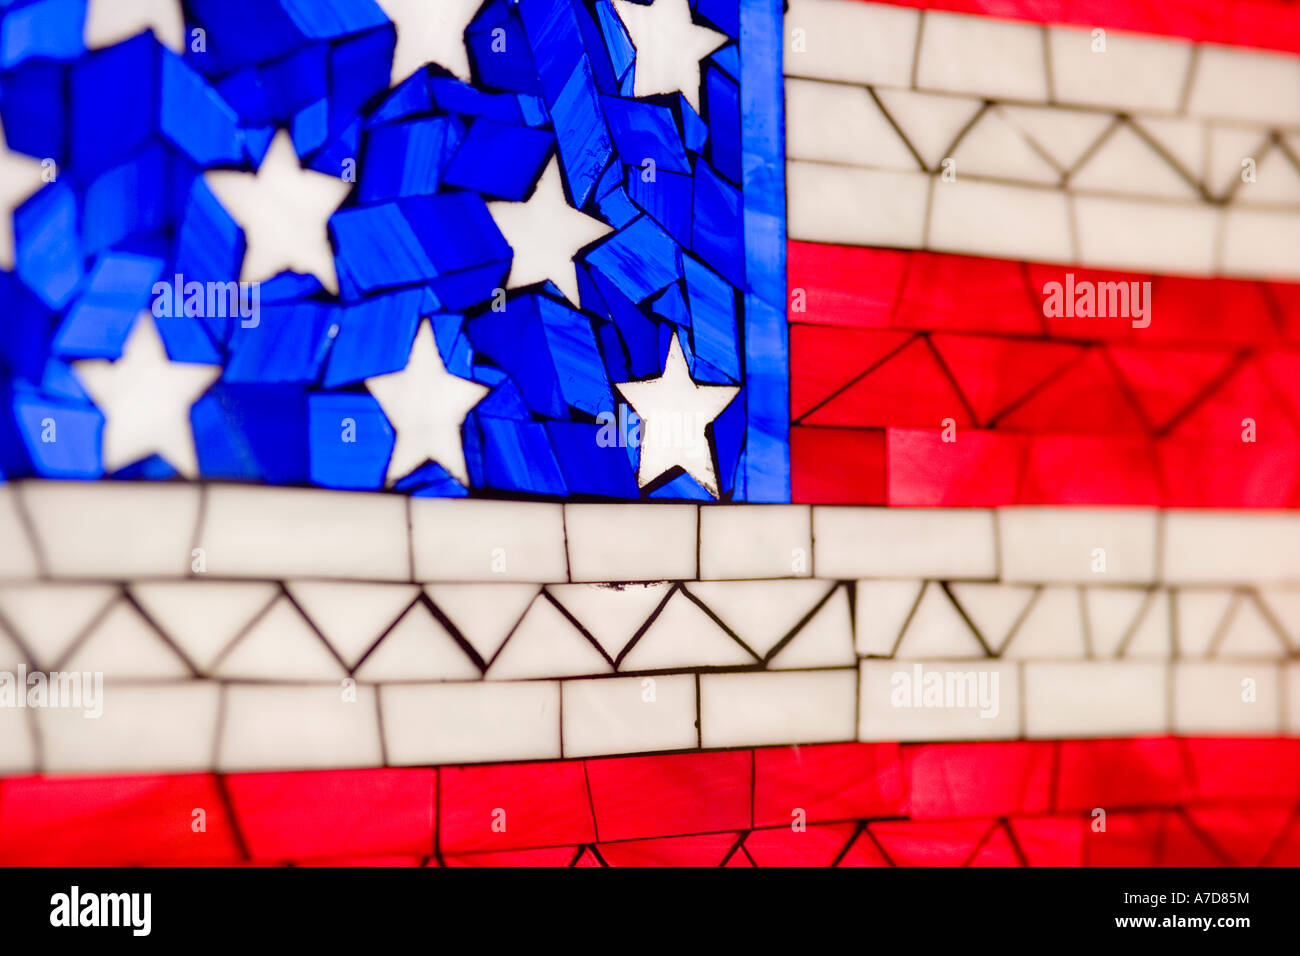 Back lit Tiffany stained glass window with American flag decor. Chicago USA. Detail. - Stock Image